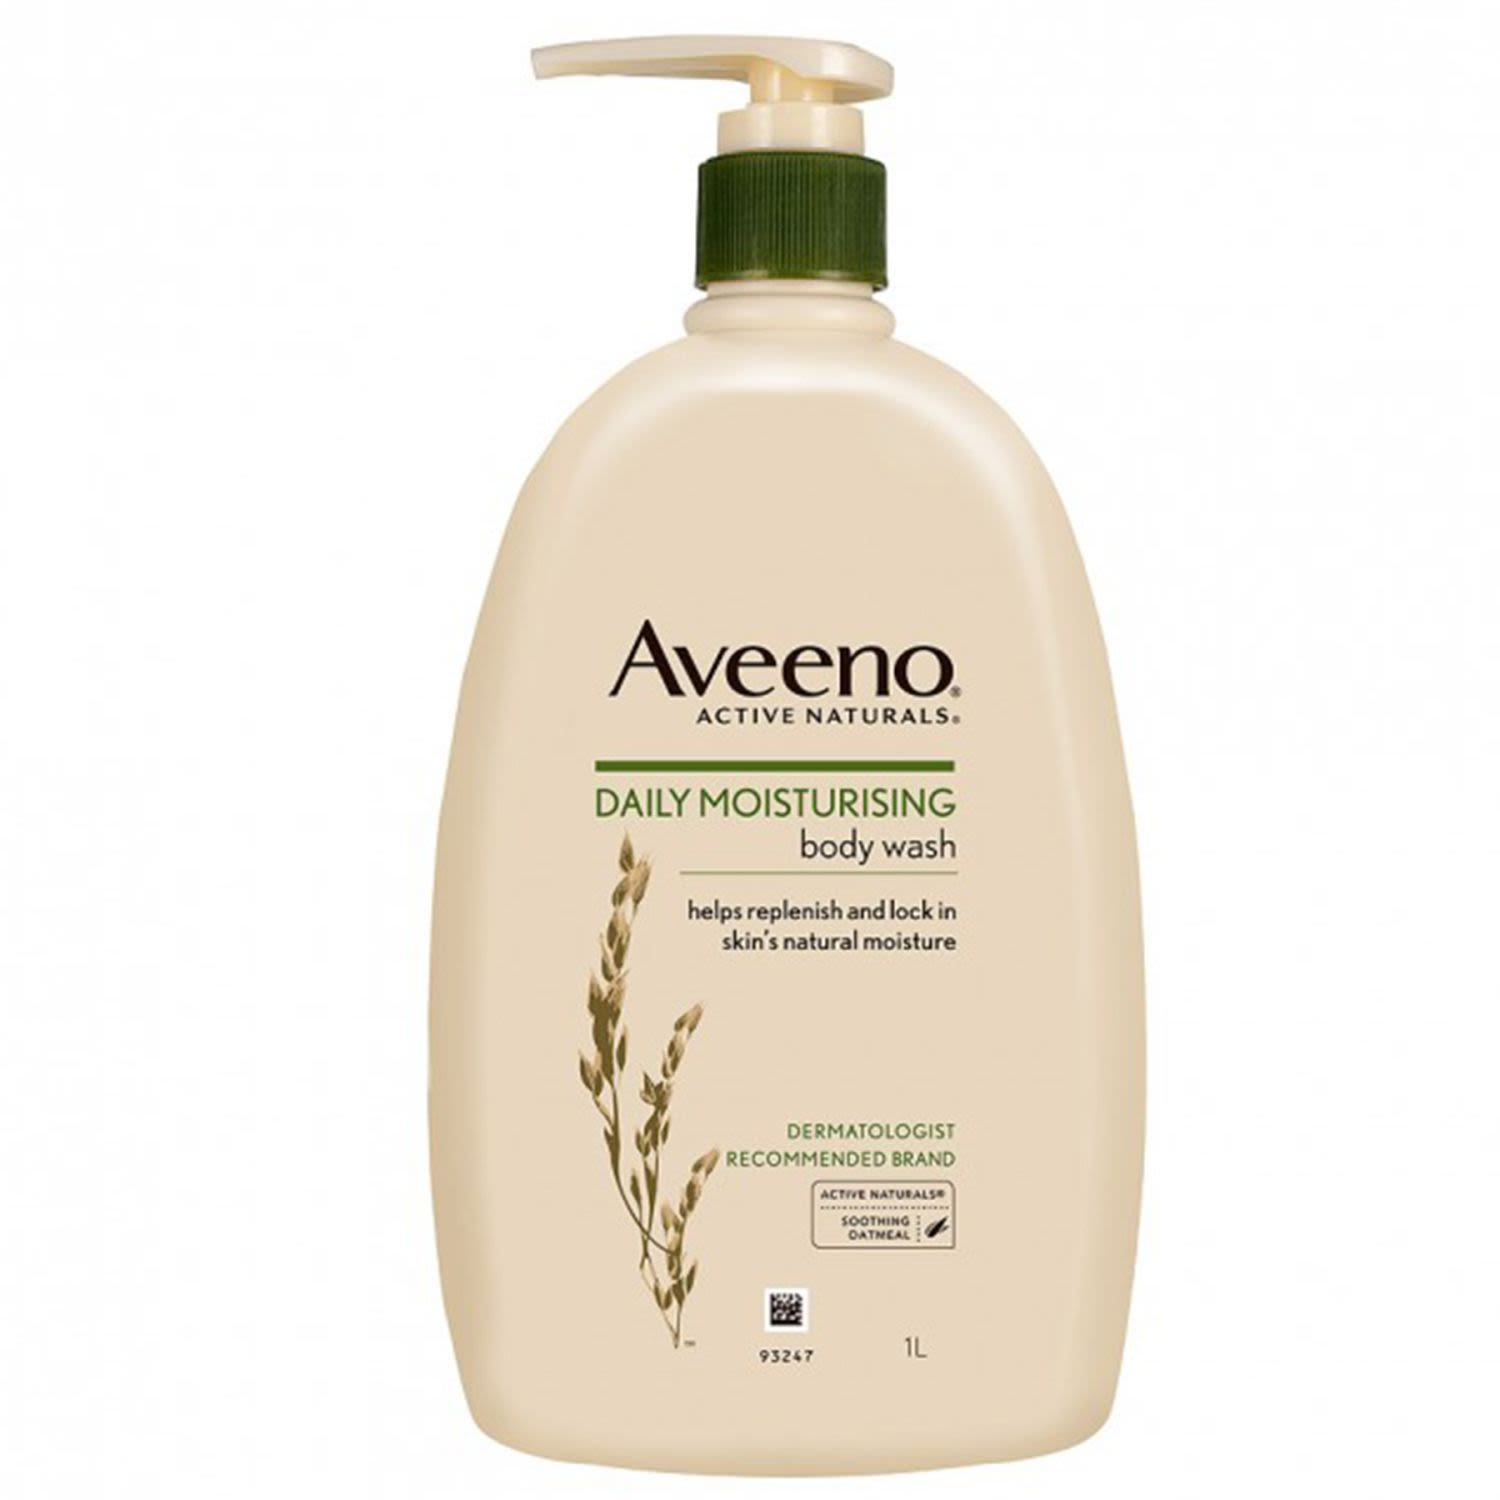 Aveeno Active Naturals Daily Moisturising Body Wash Soothing Oatmeal, 1 Litre